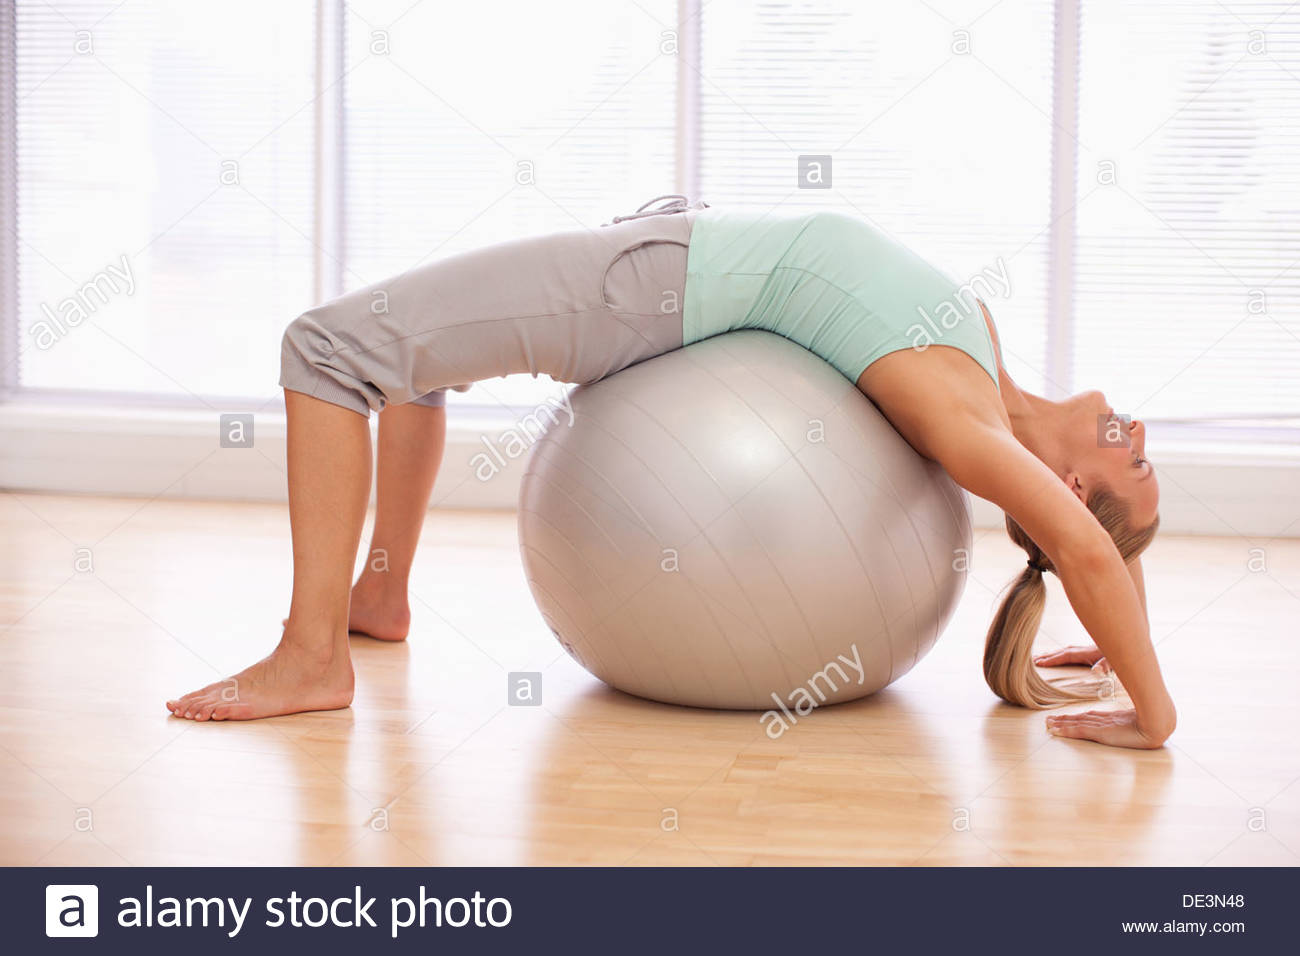 Woman doing sit-ups with fitness ball - Stock Image